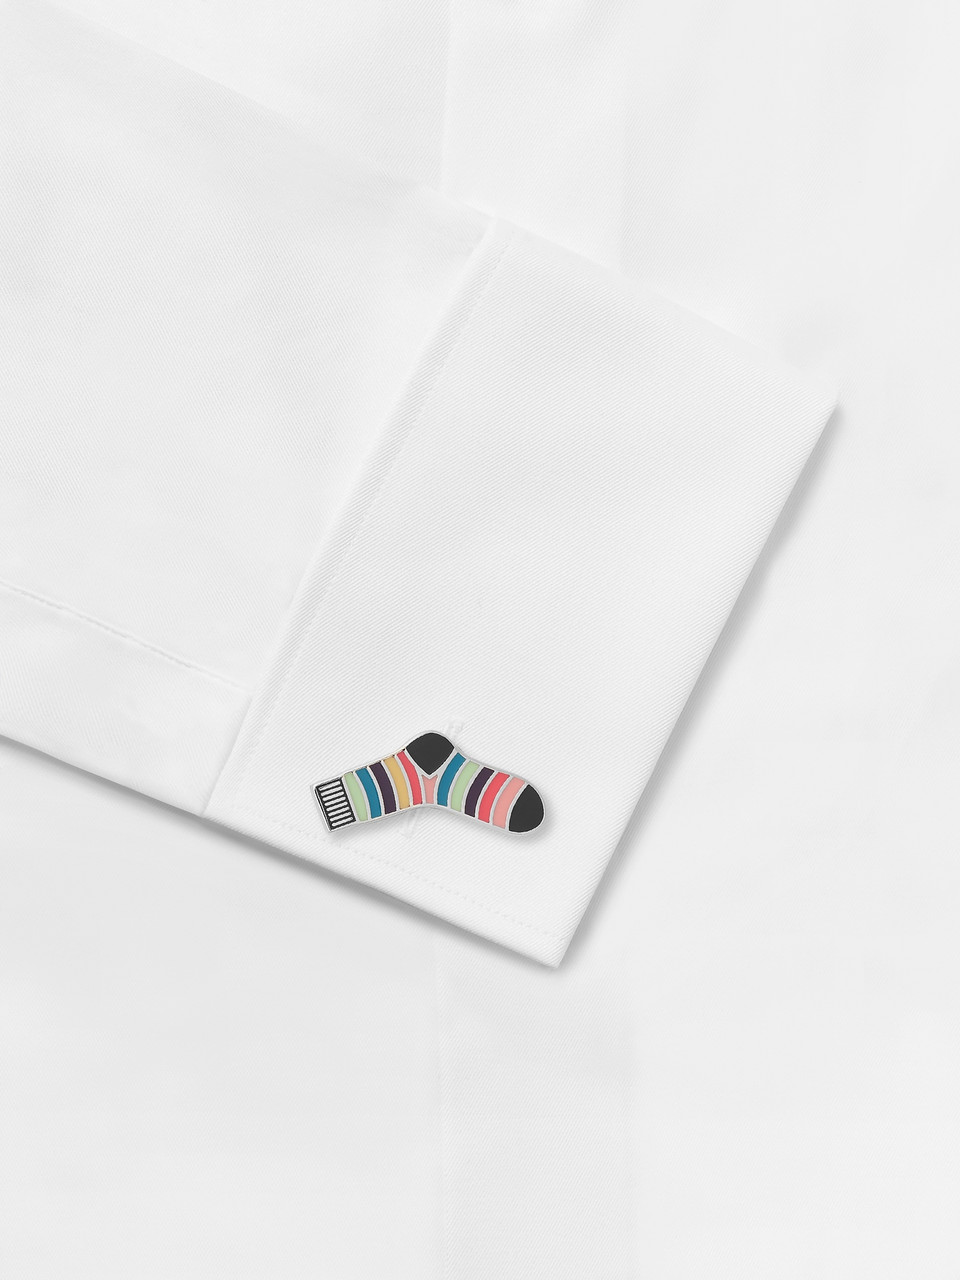 Paul Smith Striped Sock Silver-Tone and Enamel Cufflinks